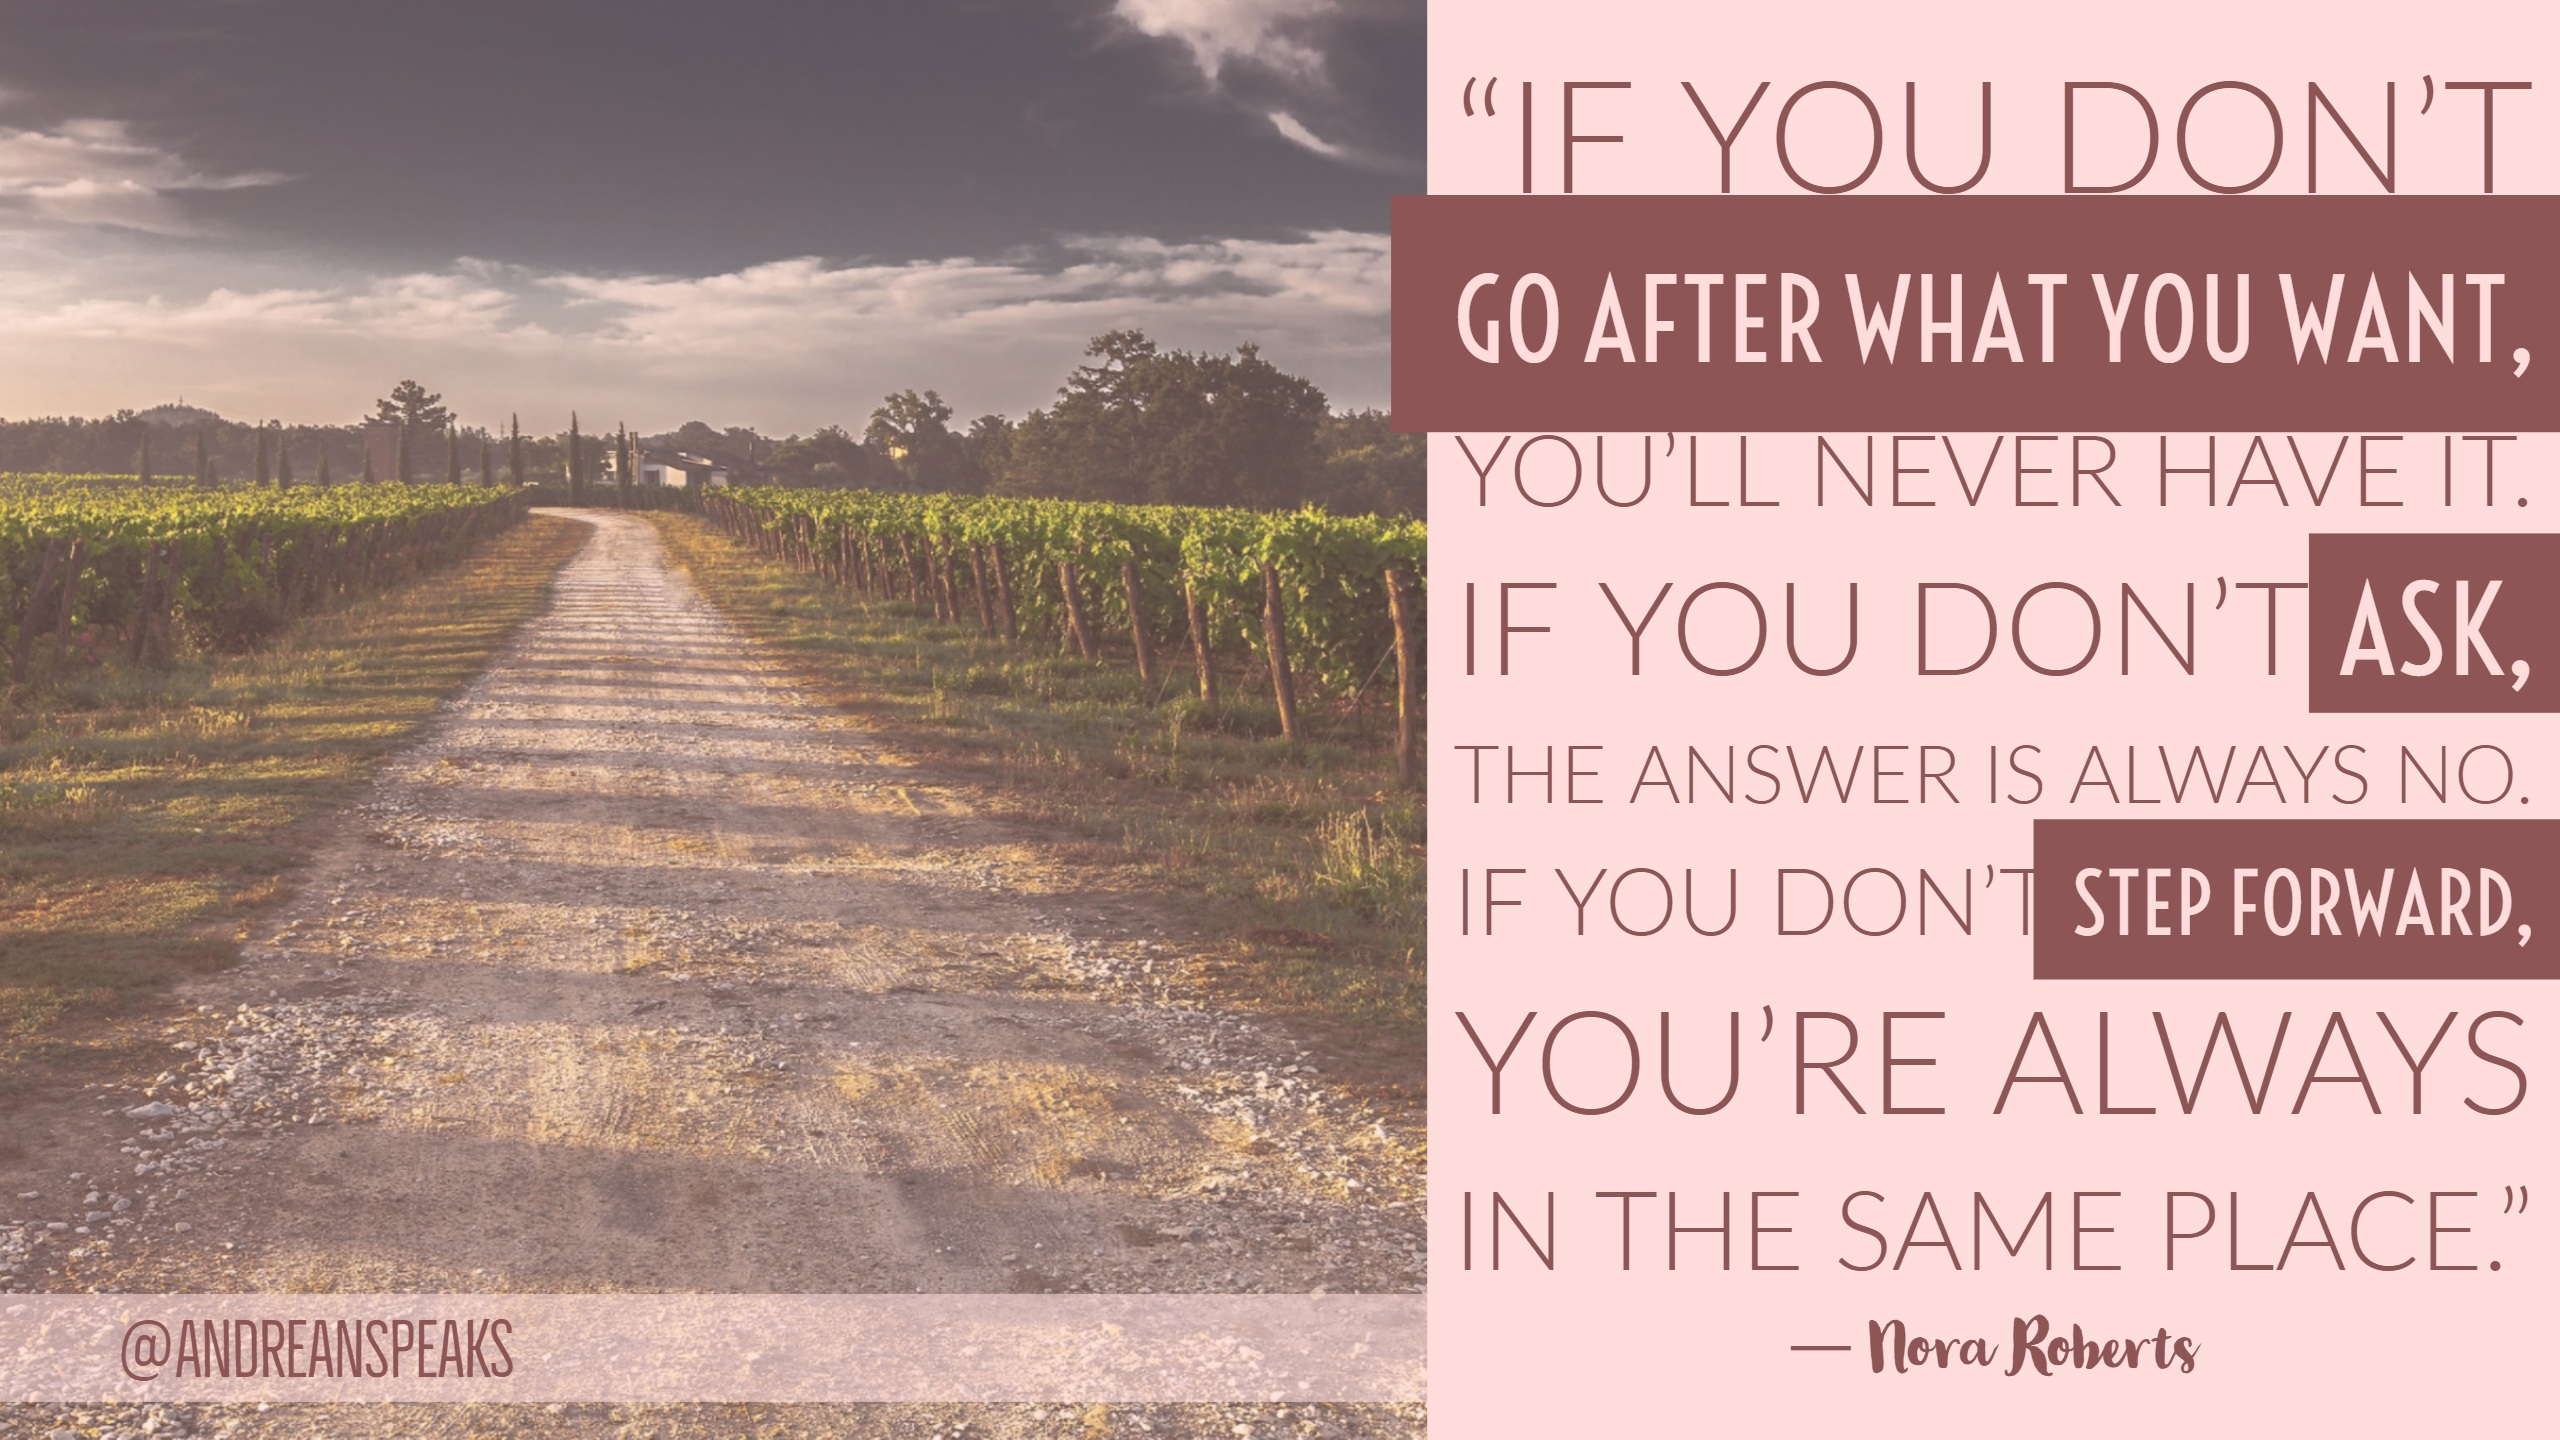 if you don't go after...